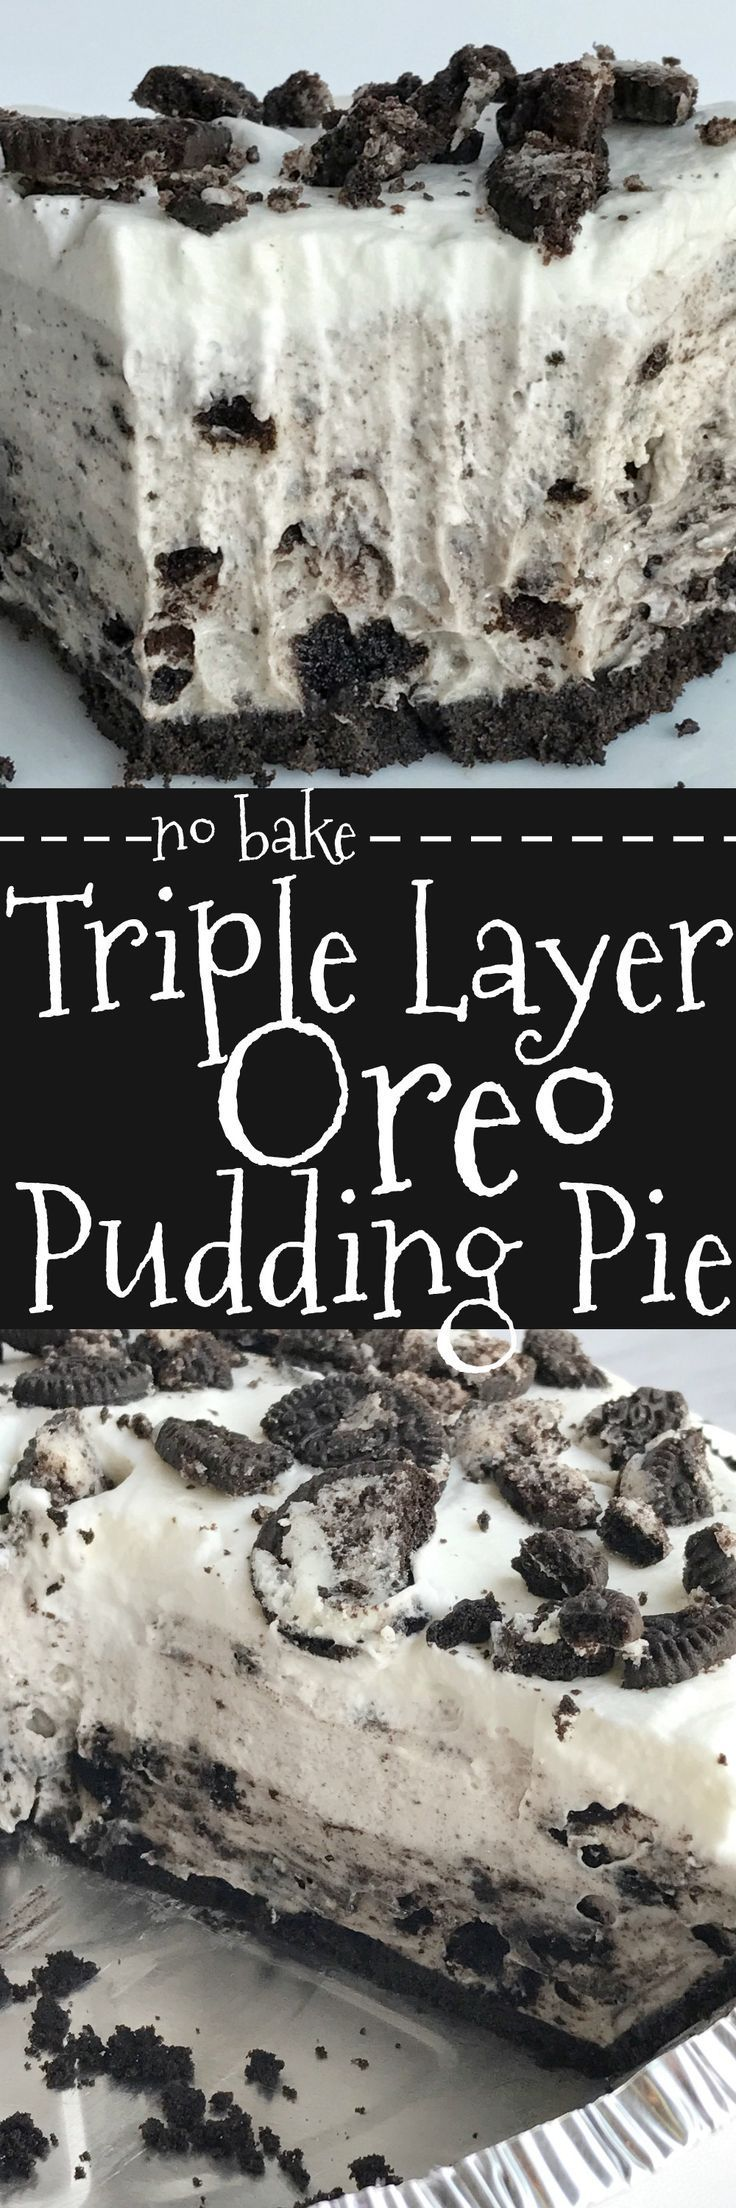 Triple layer Oreo pudding pie is a no bake dessert that is so simple to make and so yummy. All you need are 5 ingredients! It's the perfect summer pie because there is no oven needed and it's so light tasting. layer Oreo pudding pie is a no bake dessert that is so simple to make and so yummy. All you need are 5 ingredients! It's the perfect summer pie because there is no oven needed and it's so light tasting.